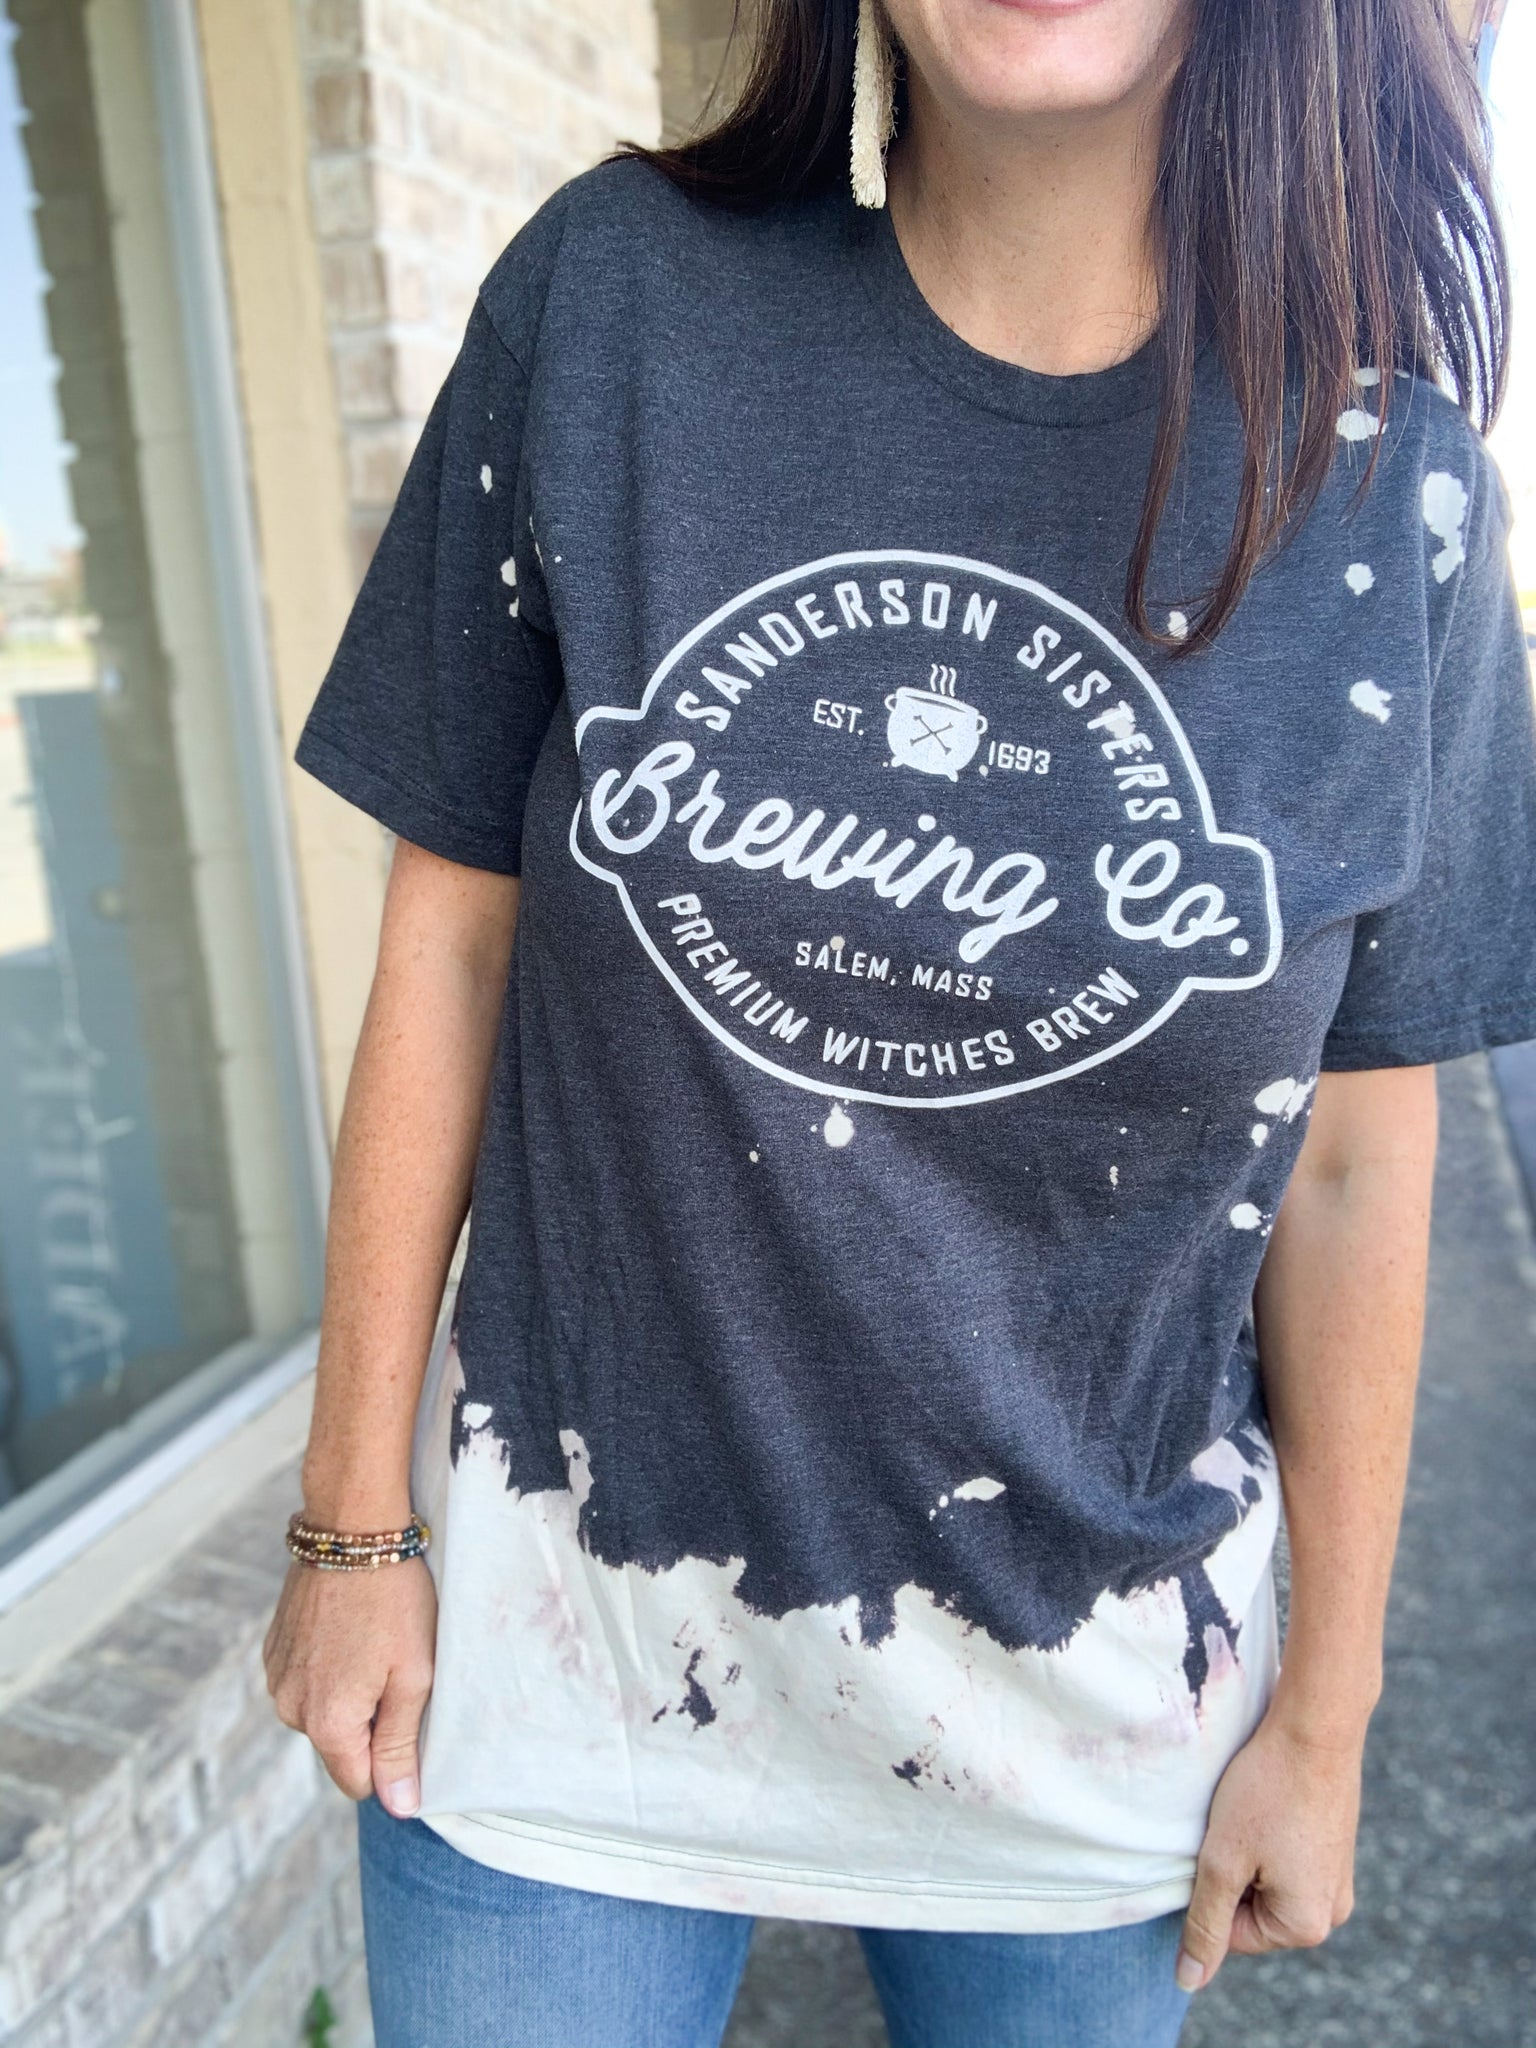 Bleached Sanderson Brewing Co T-Shirt